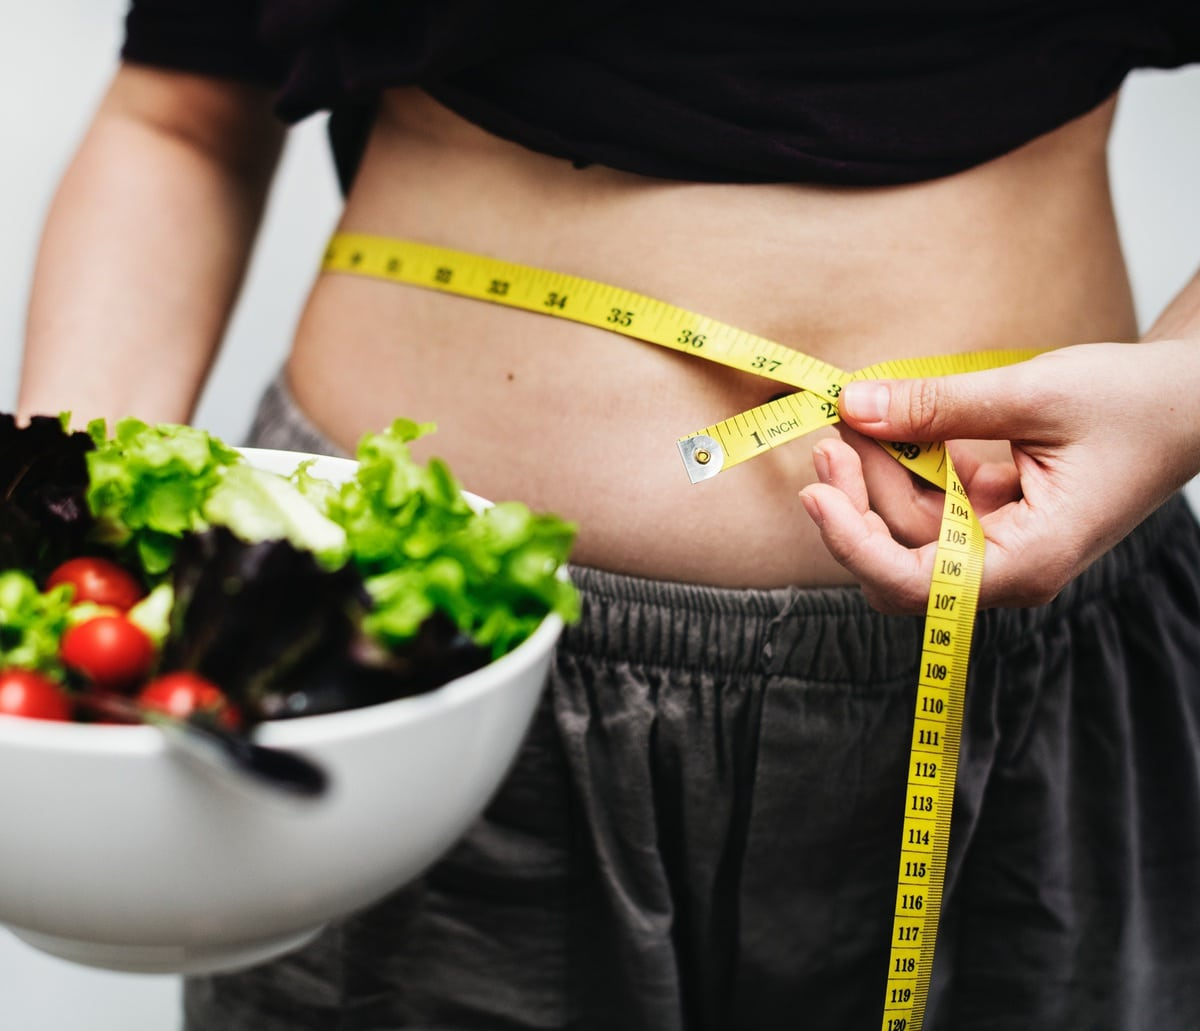 military diet shopping list - lose weight